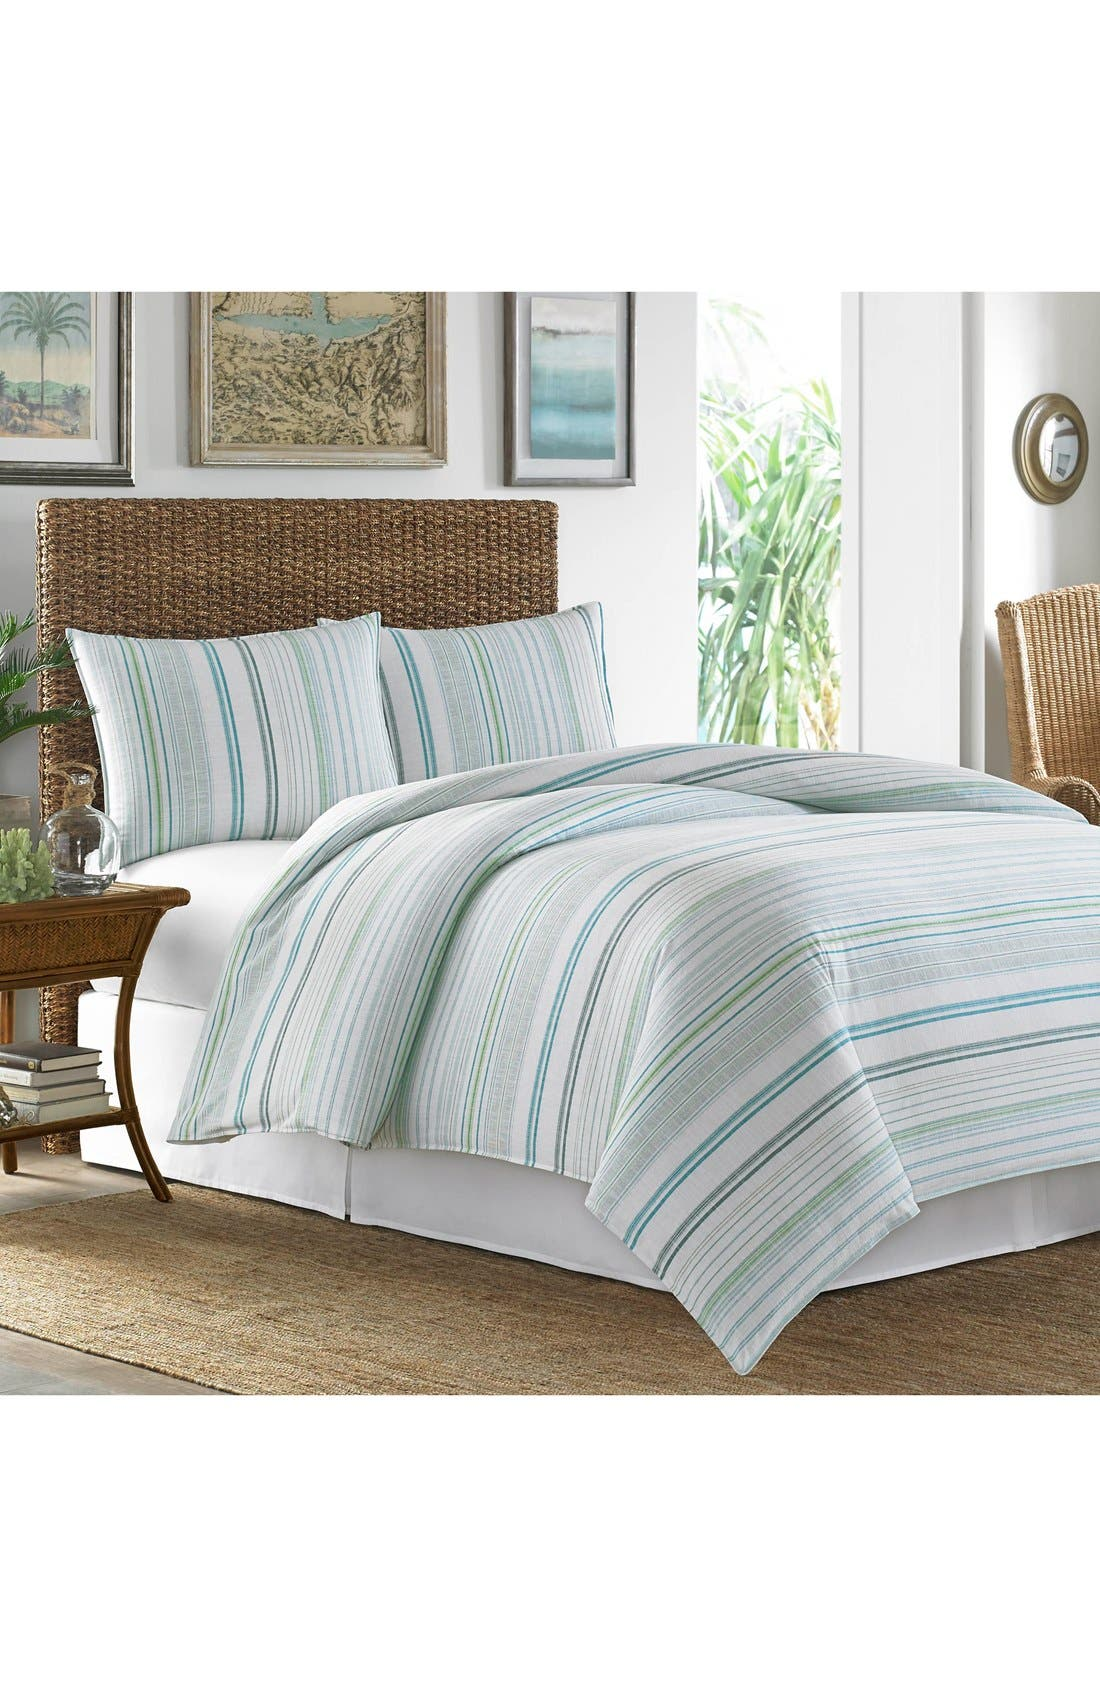 'La Scala Breezer' Duvet Cover,                             Main thumbnail 1, color,                             440